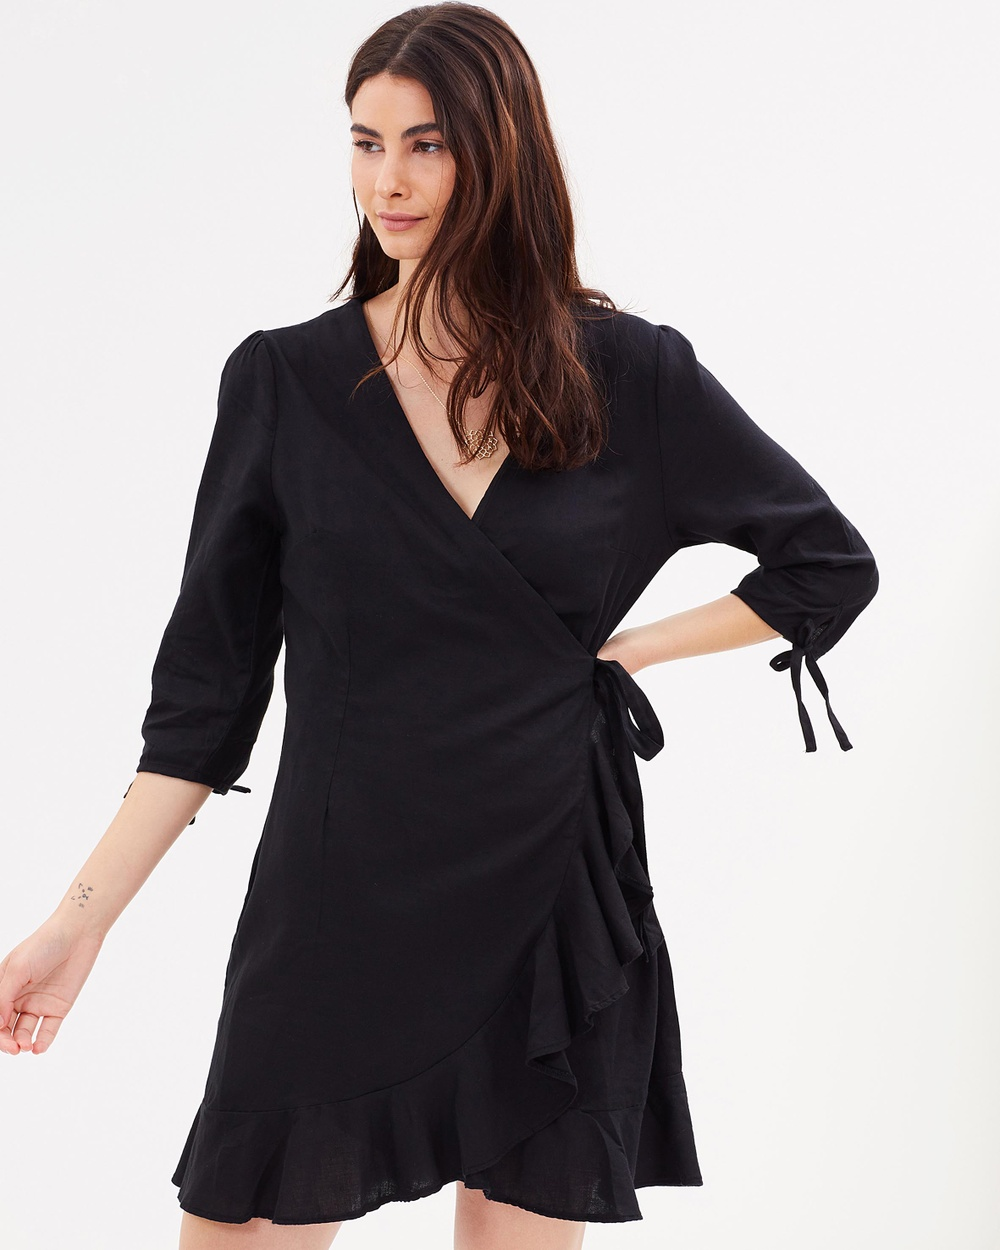 Photo of Cotton On Cotton On Woven Charli 3 4 Sleeve Wrap Dress Dresses Black Woven Charli 3-4 Sleeve Wrap Dress - From humble beginnings selling clothes out of the boot of a Ford Bronco in regional Australia to expanding into a globally recognised retailer, Cotton On are innovators in affordable ready-to-wear fashion. With a range of basic tees, pants, dresses and shorts they are a go-to brand for all your casual needs. The Woven Charli 3/4 Sleeve Wrap Dress in pure breathable co